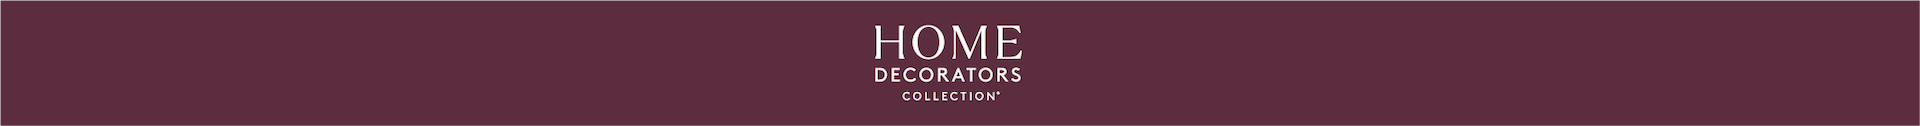 Home Decorator Collection Banner